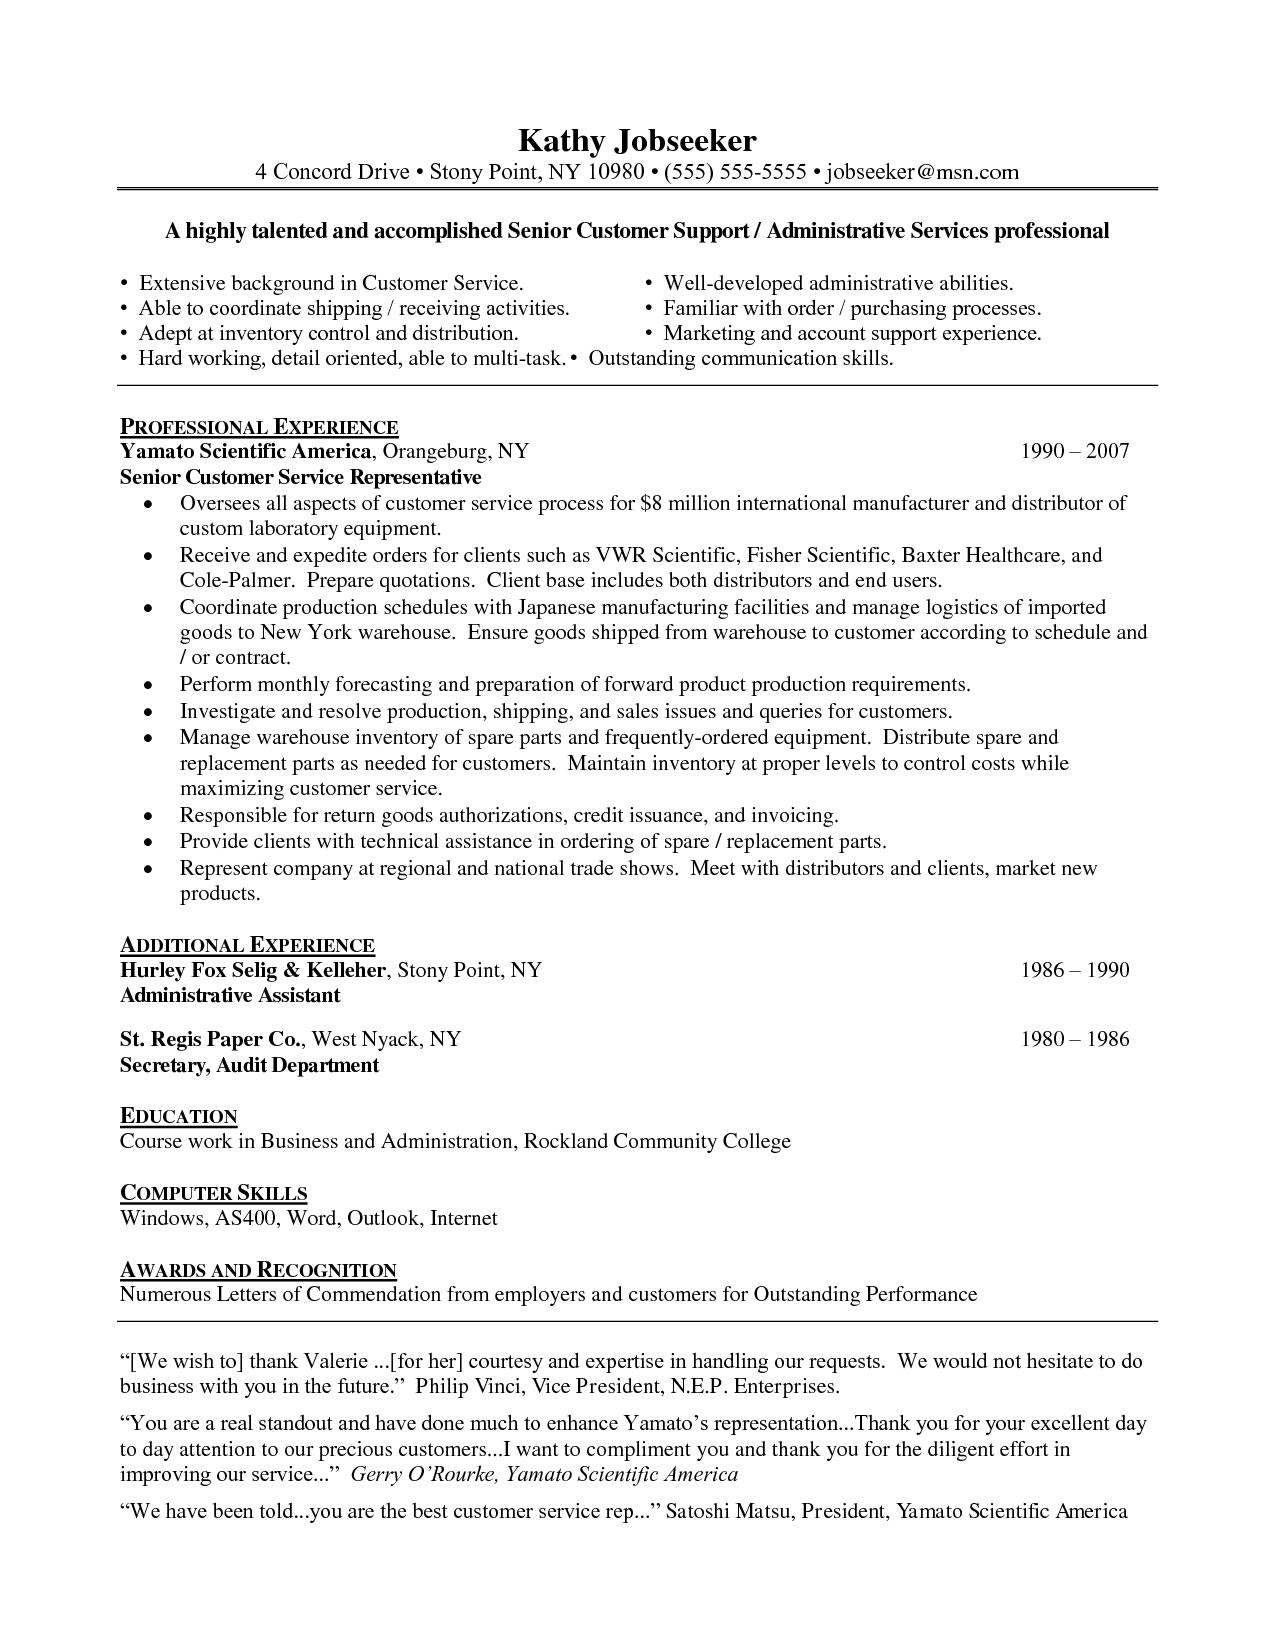 62 Great Customer Service Resume Objective Or Summary Examples for Pictures